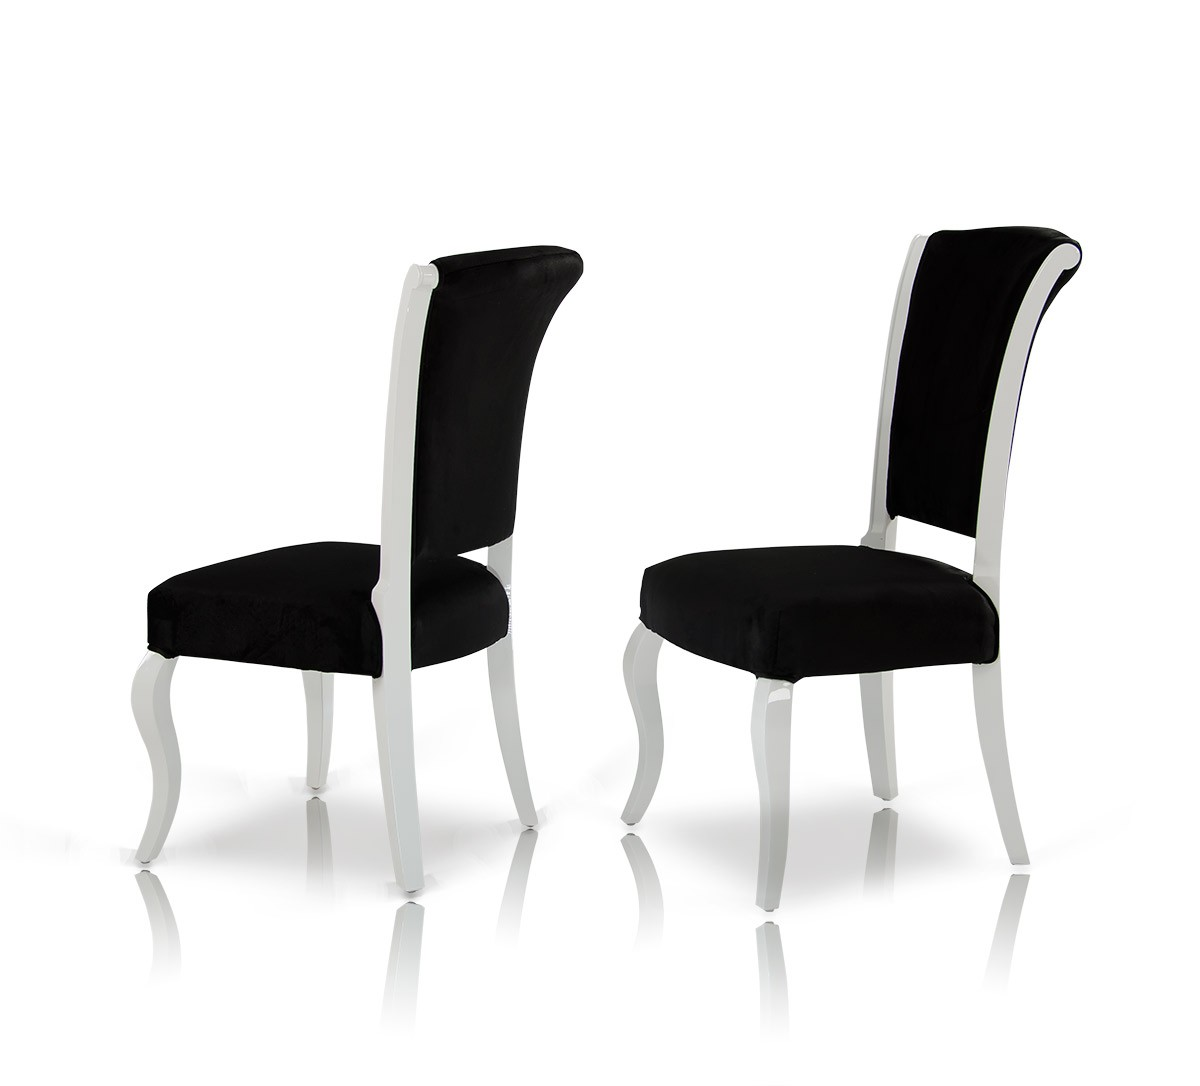 Seema - Modern Black & White Dining Chair (Set of 2)